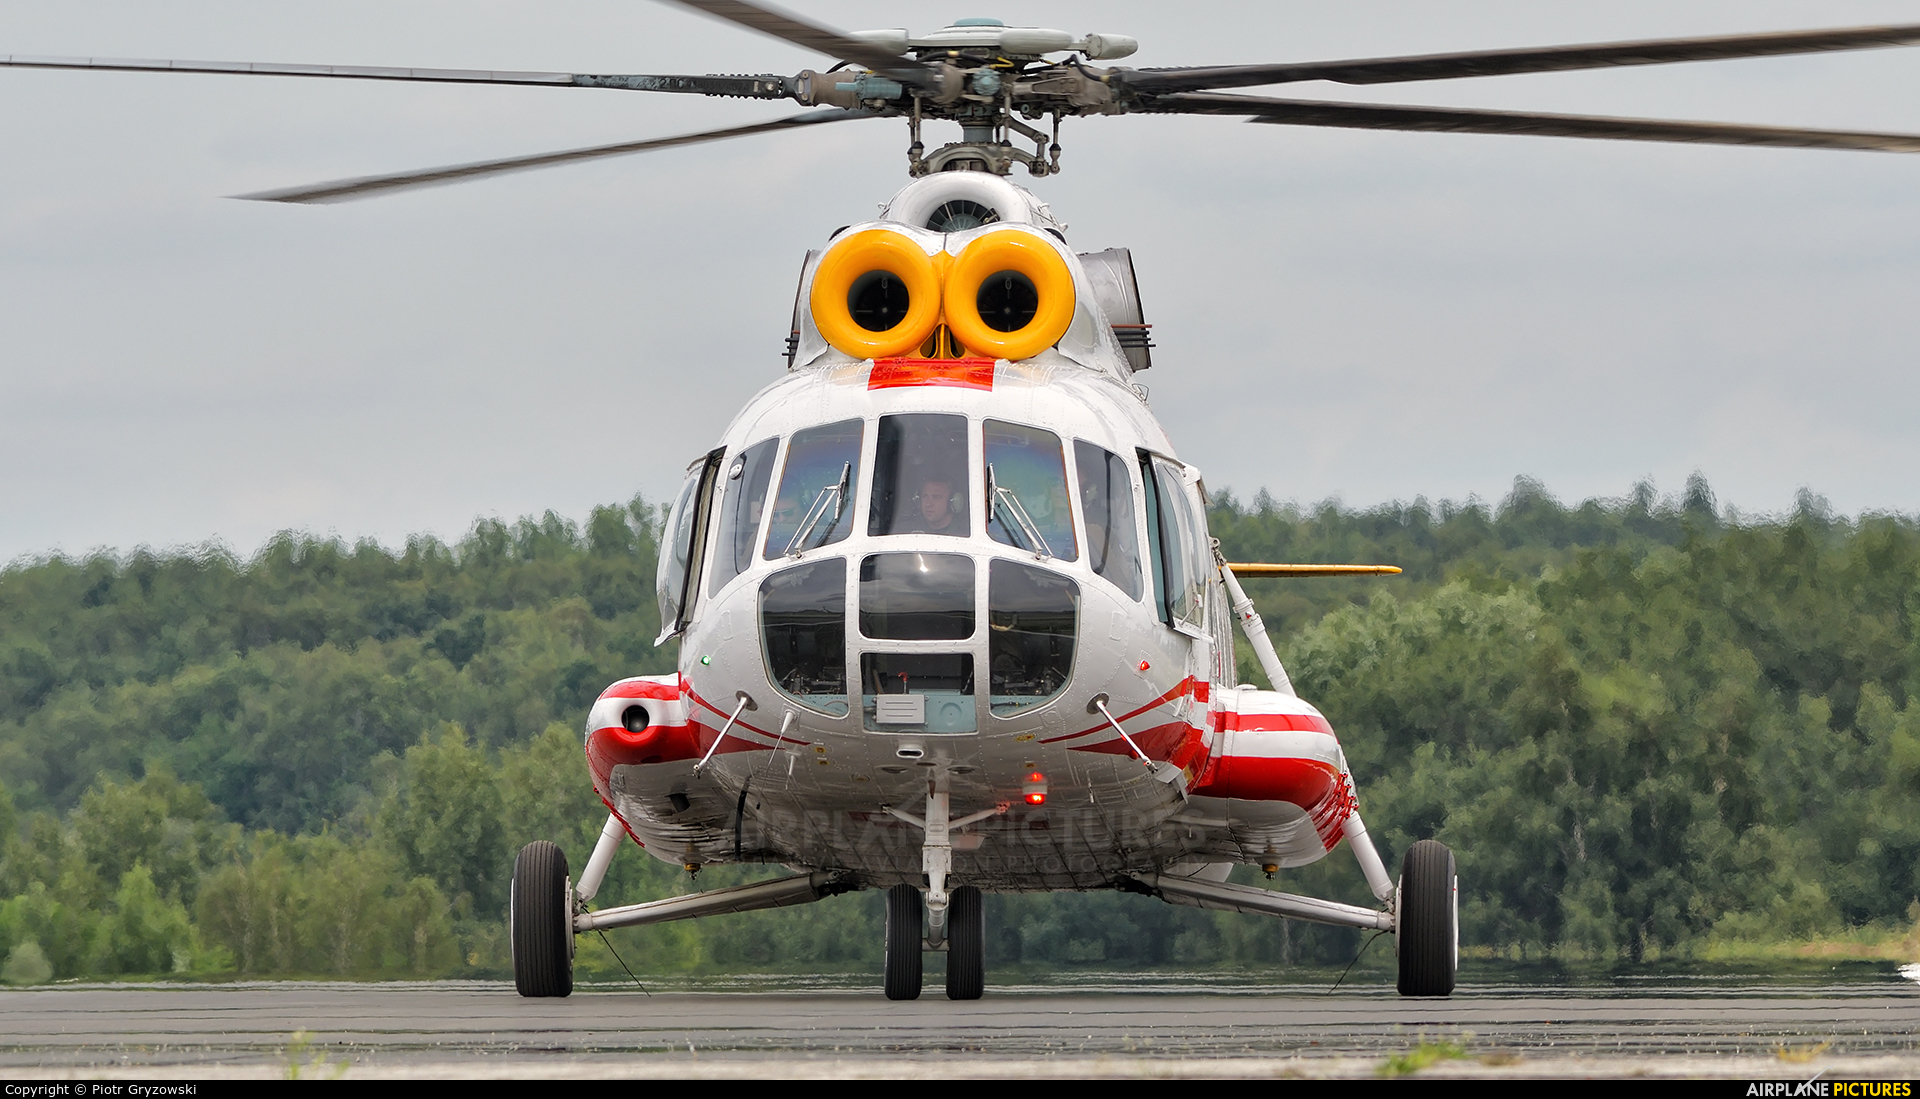 Poland - Air Force 634 aircraft at Katowice Muchowiec